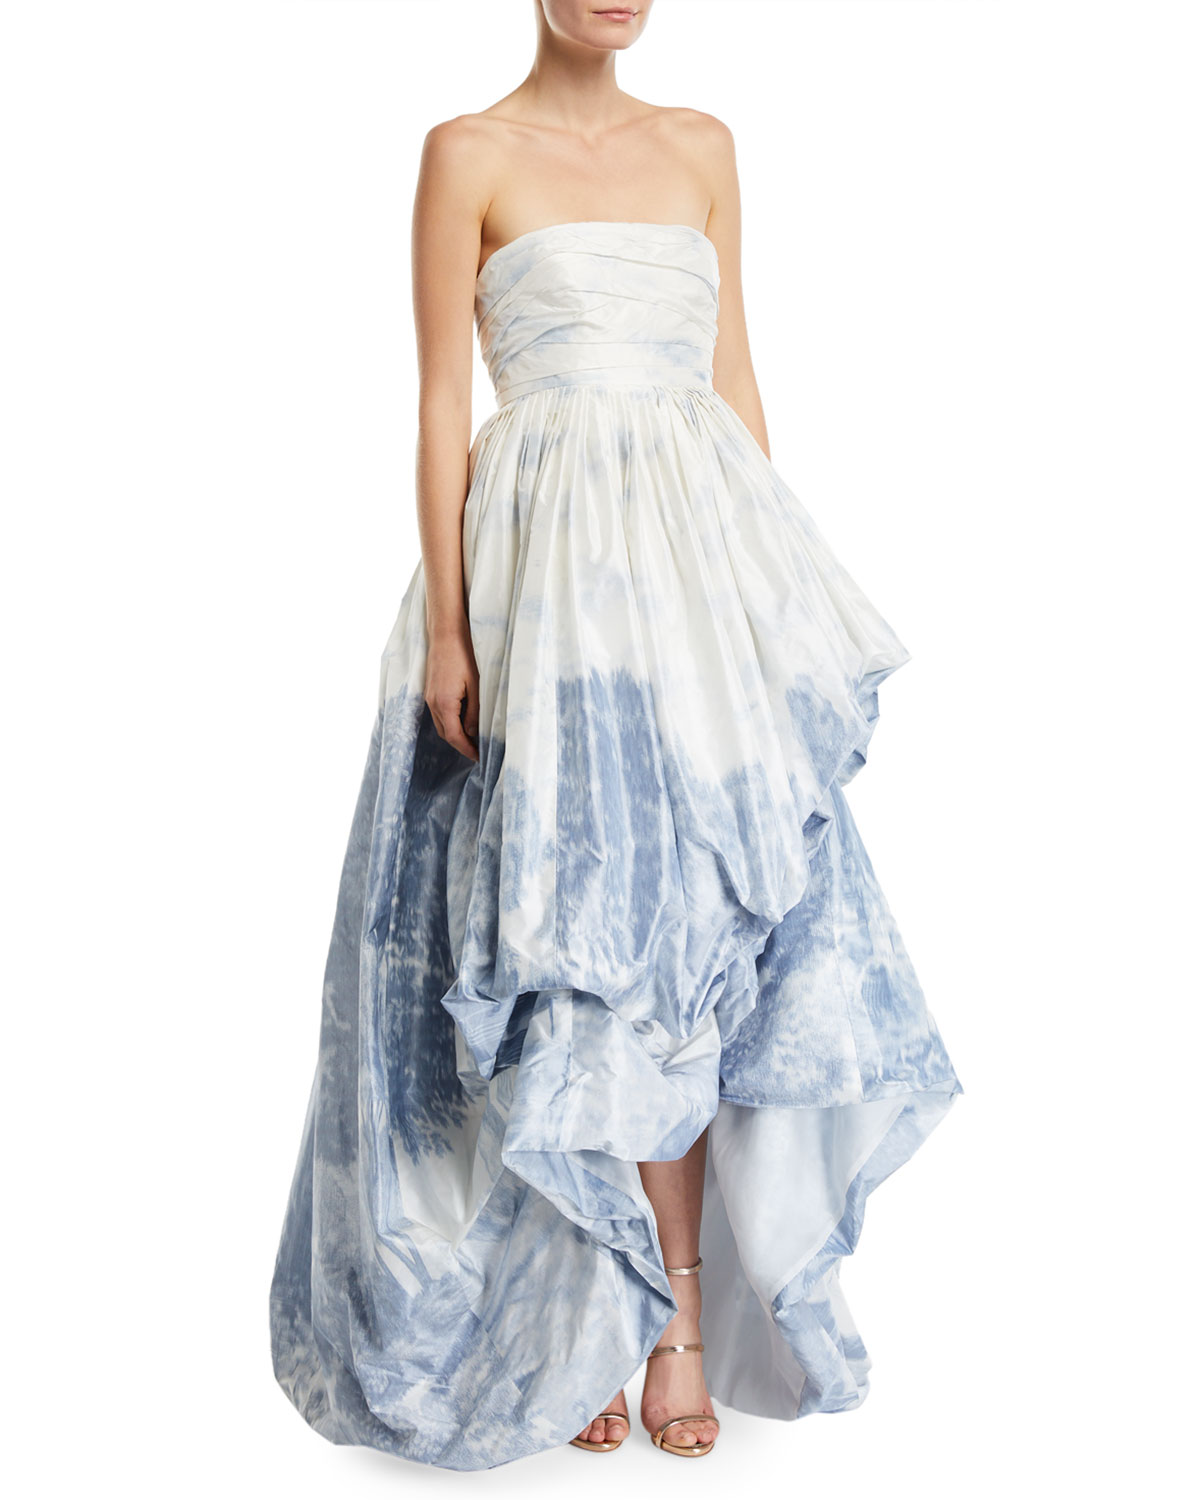 771ffd4386036 Oscar de la Renta Printed Strapless High-Low Gown